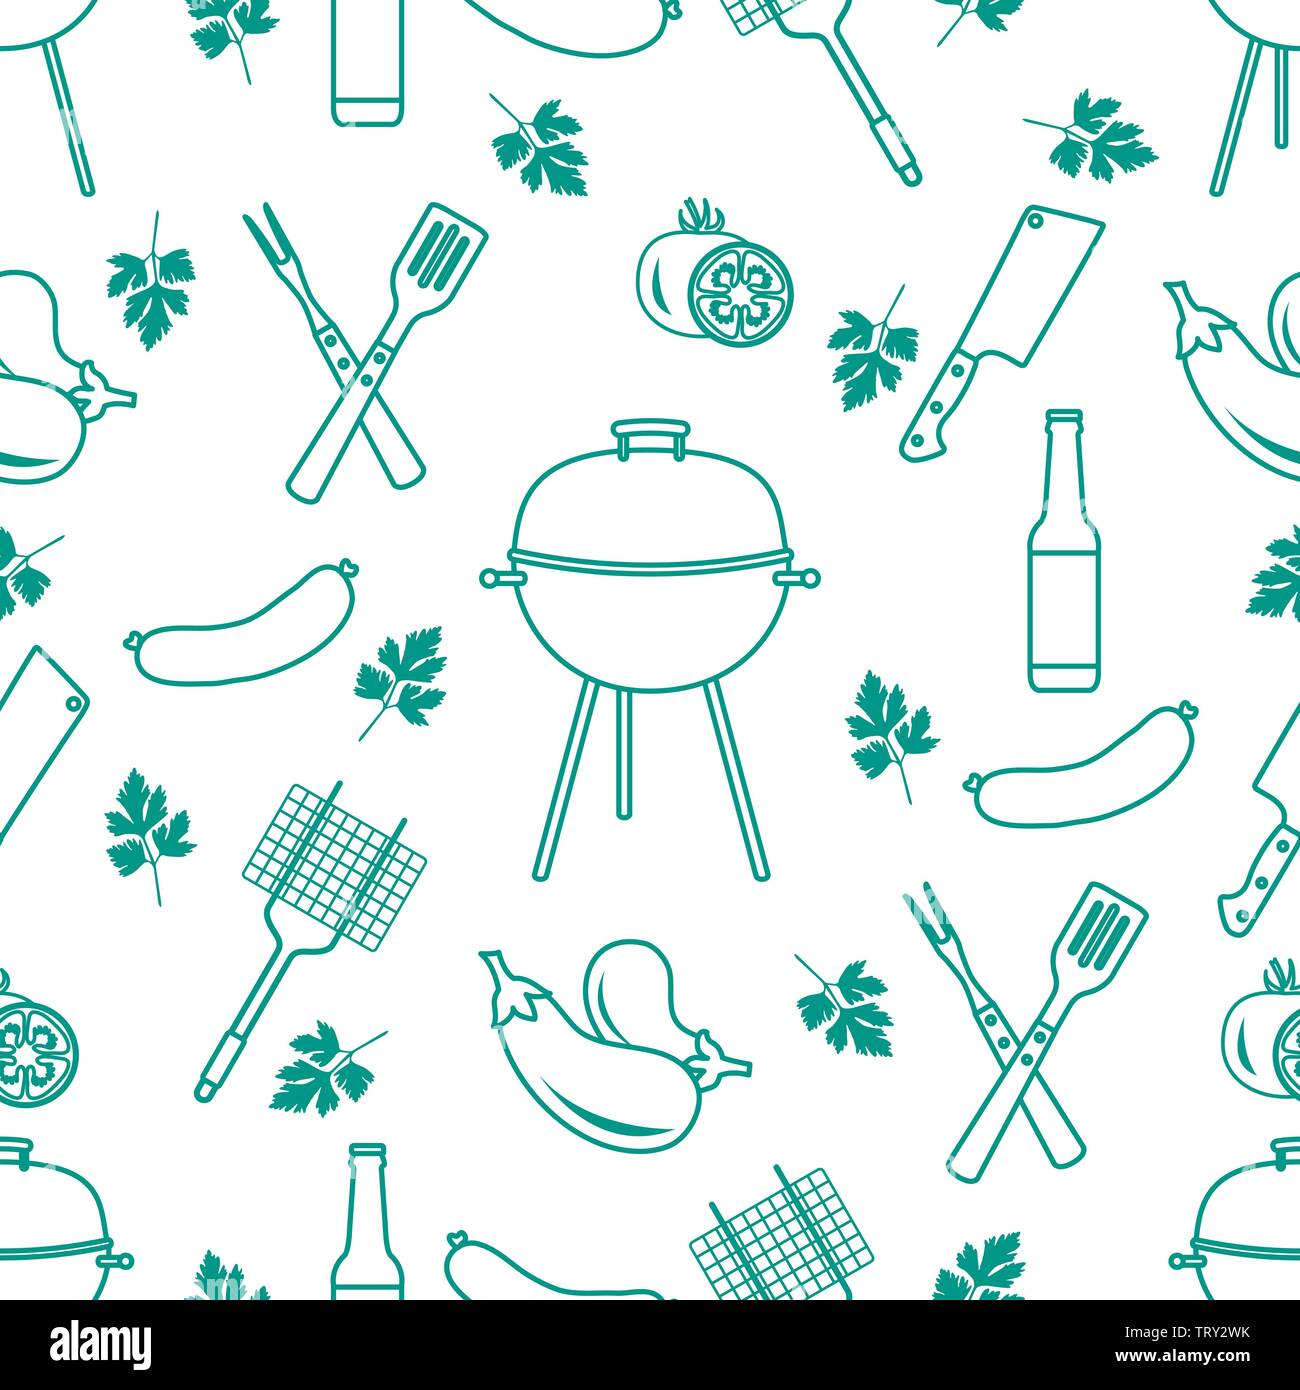 Seamless pattern with grill and barbecue tools. BBQ party background. Design for party card, banner, poster or print. - Stock Image